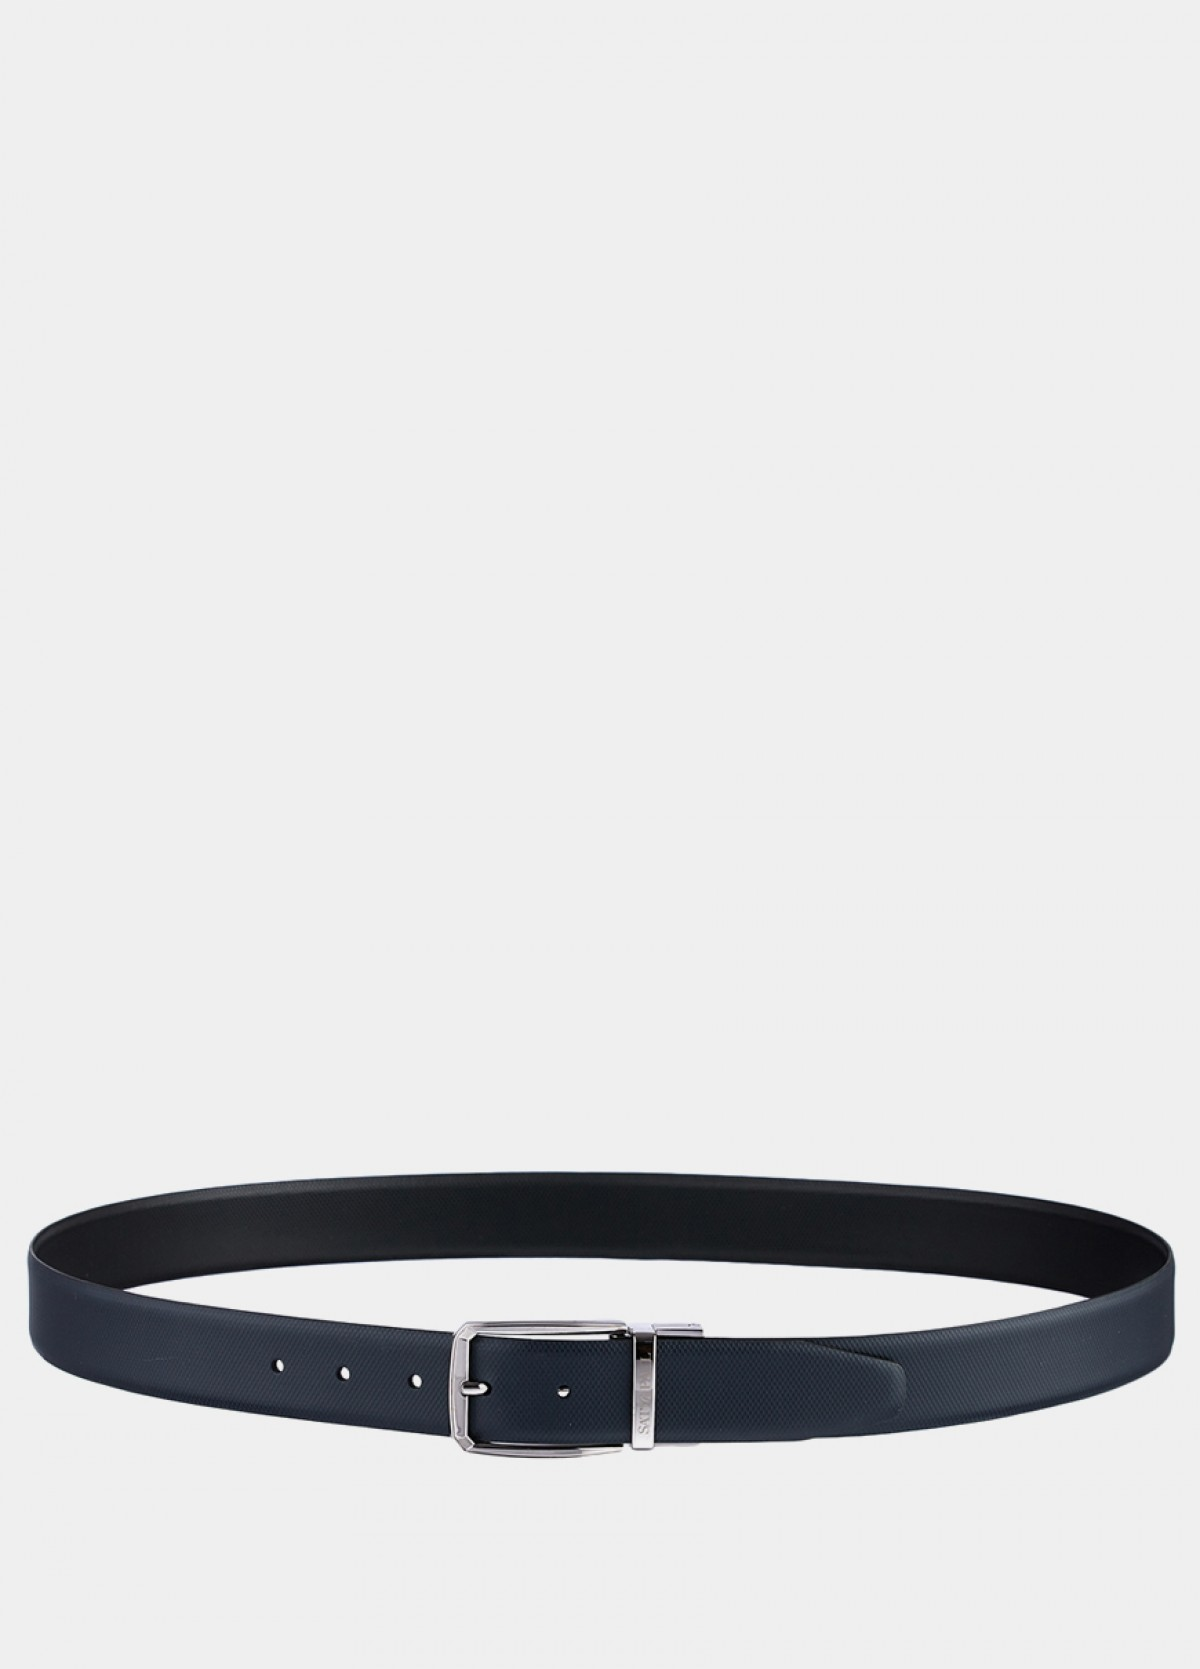 The Reversible Black And Navy Leather Belt